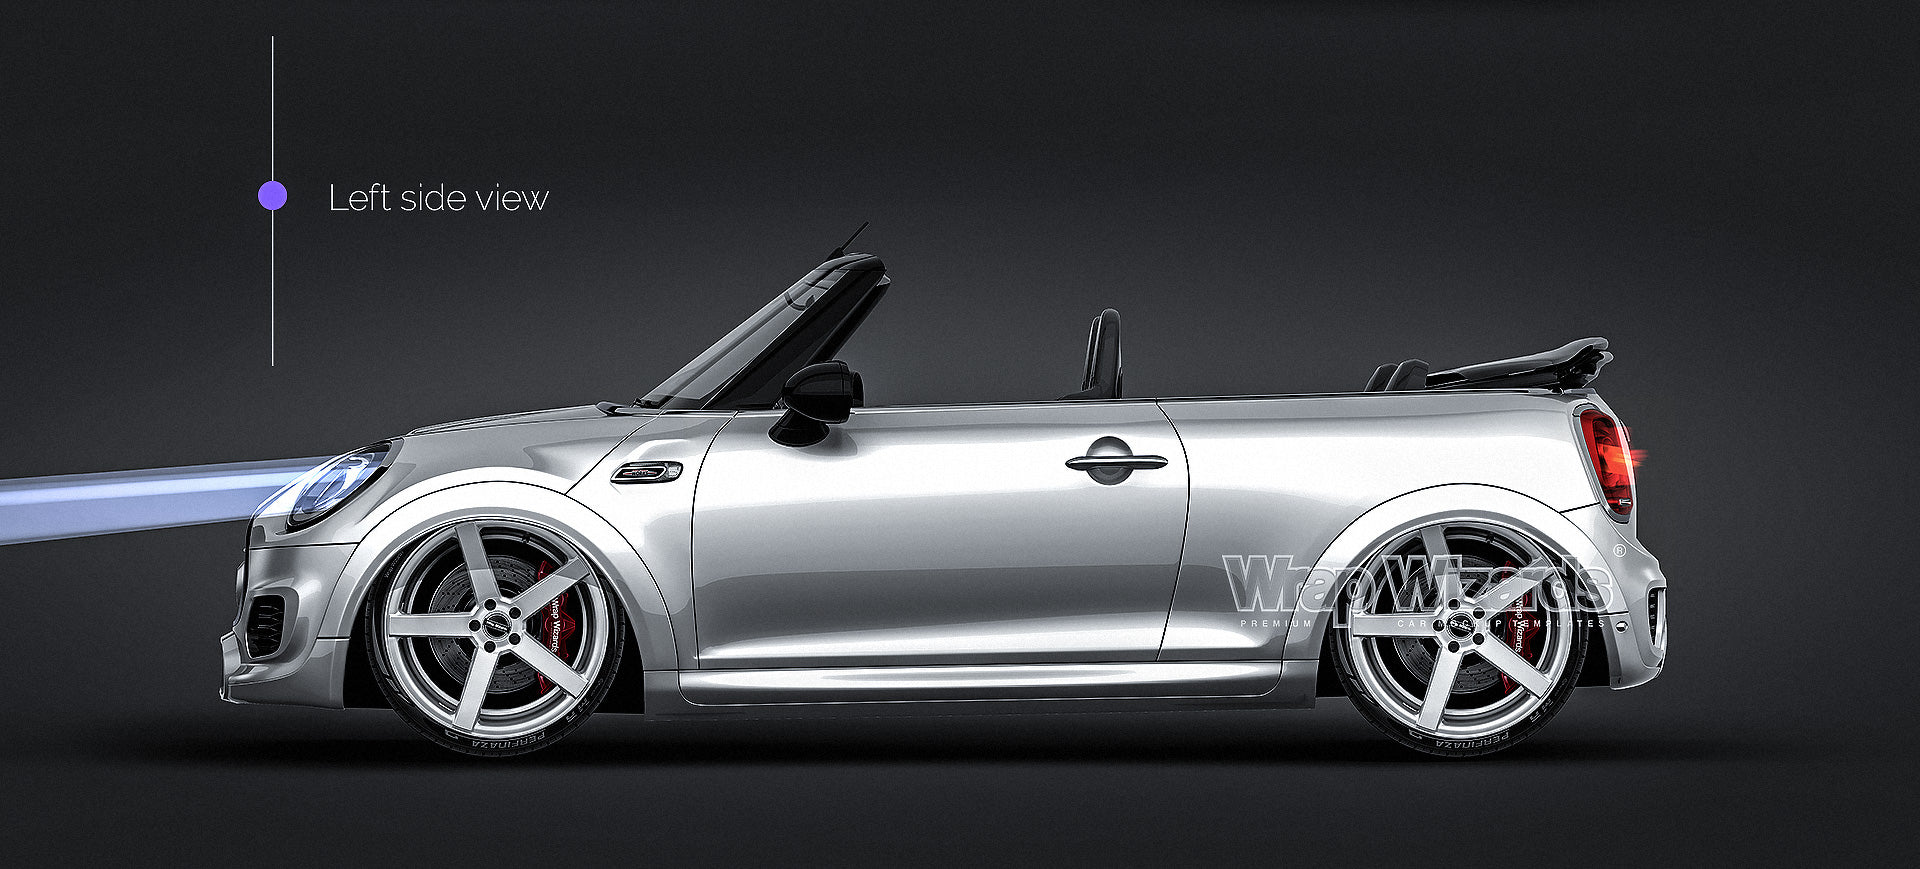 Mini Cooper S Convertible 2016 JCW all sides Car Mockup Template.psd